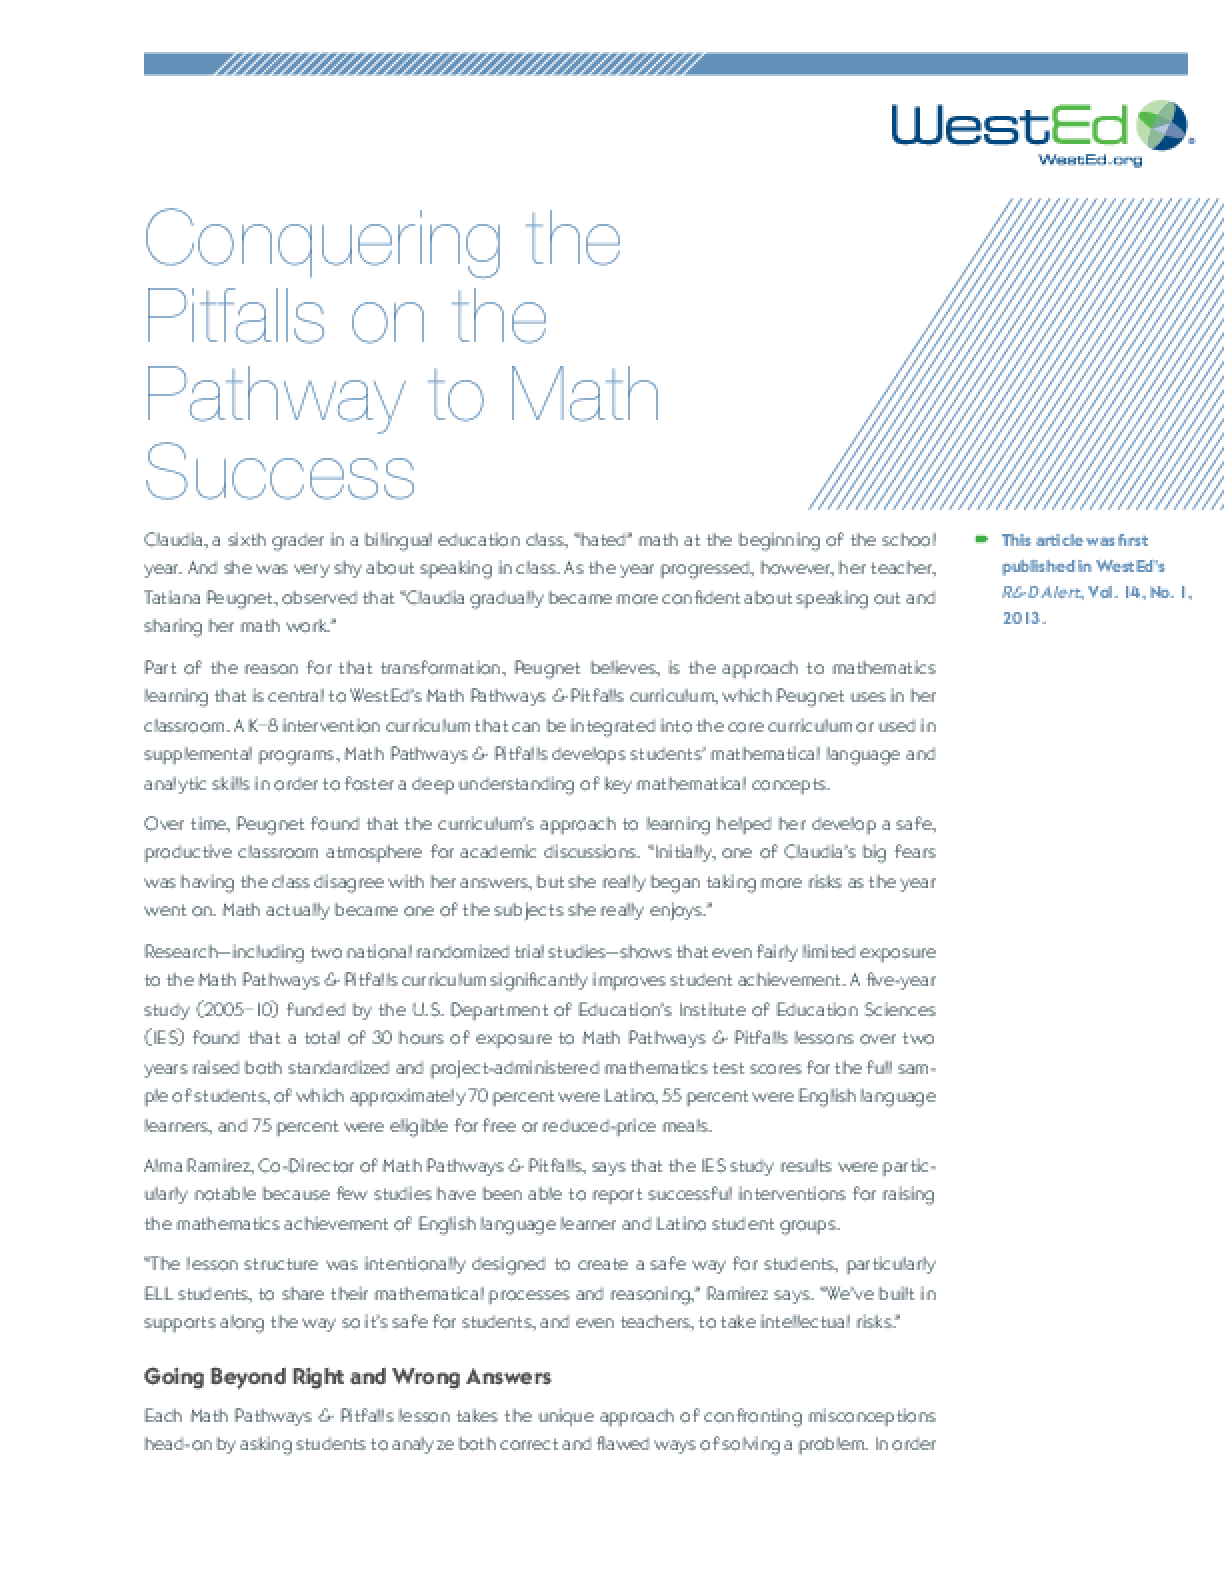 Conquering the Pitfalls on the Pathway to Math Success